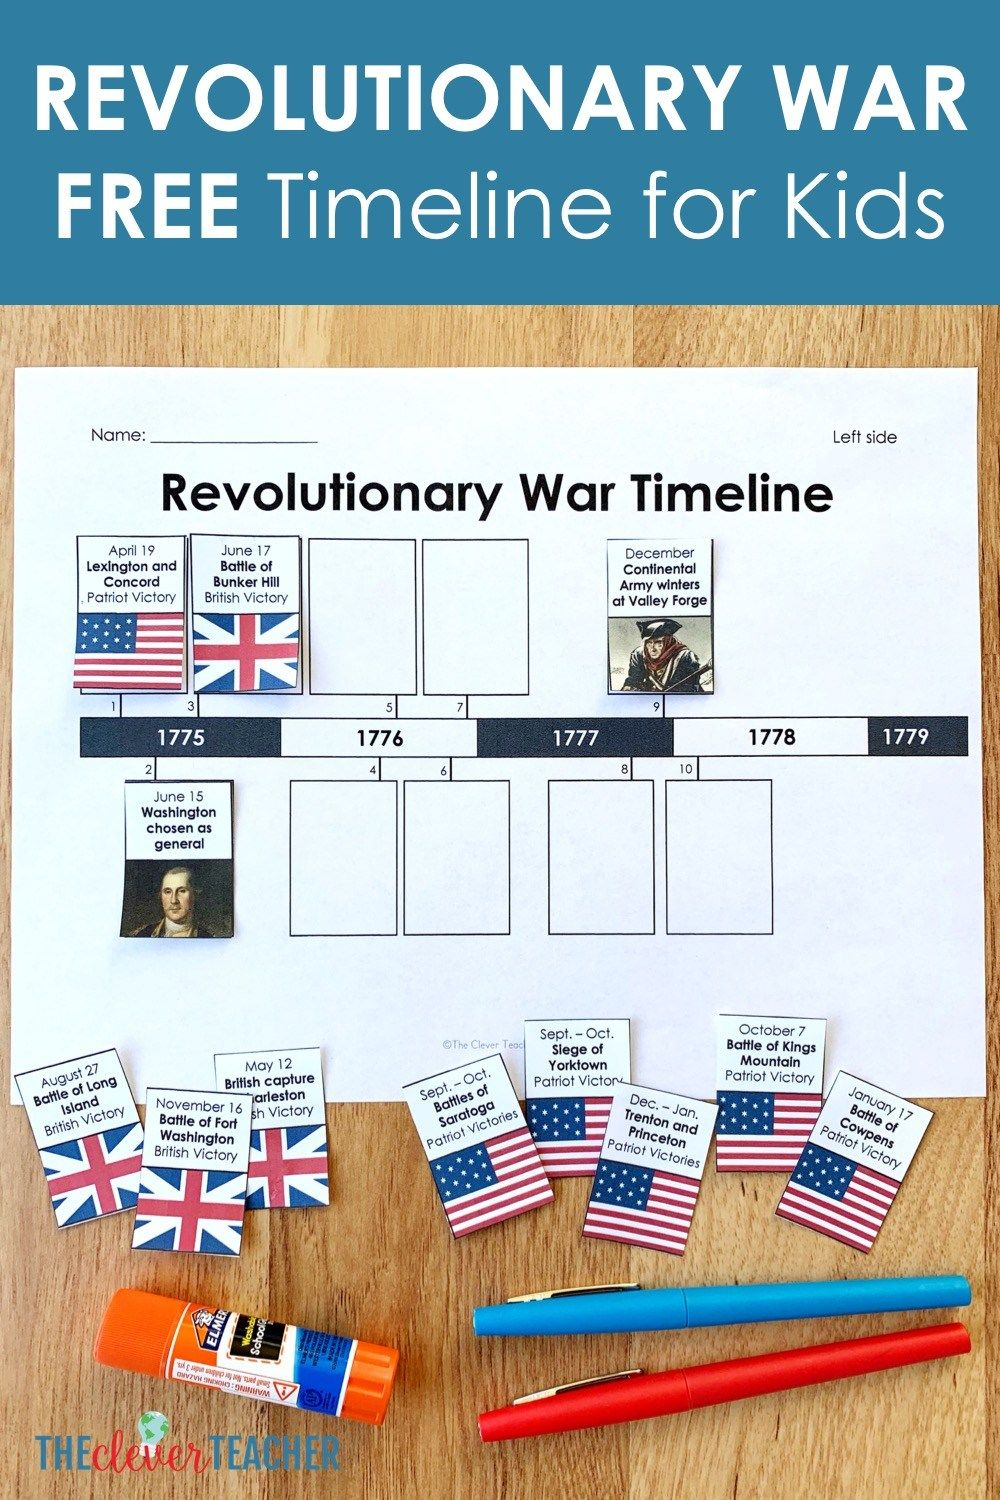 Revolutionary War Timeline Sort And Lesson Plan For 5th Grade And Middle School Students Free Worksheet Teaching History Revolutionary War Teaching Us History